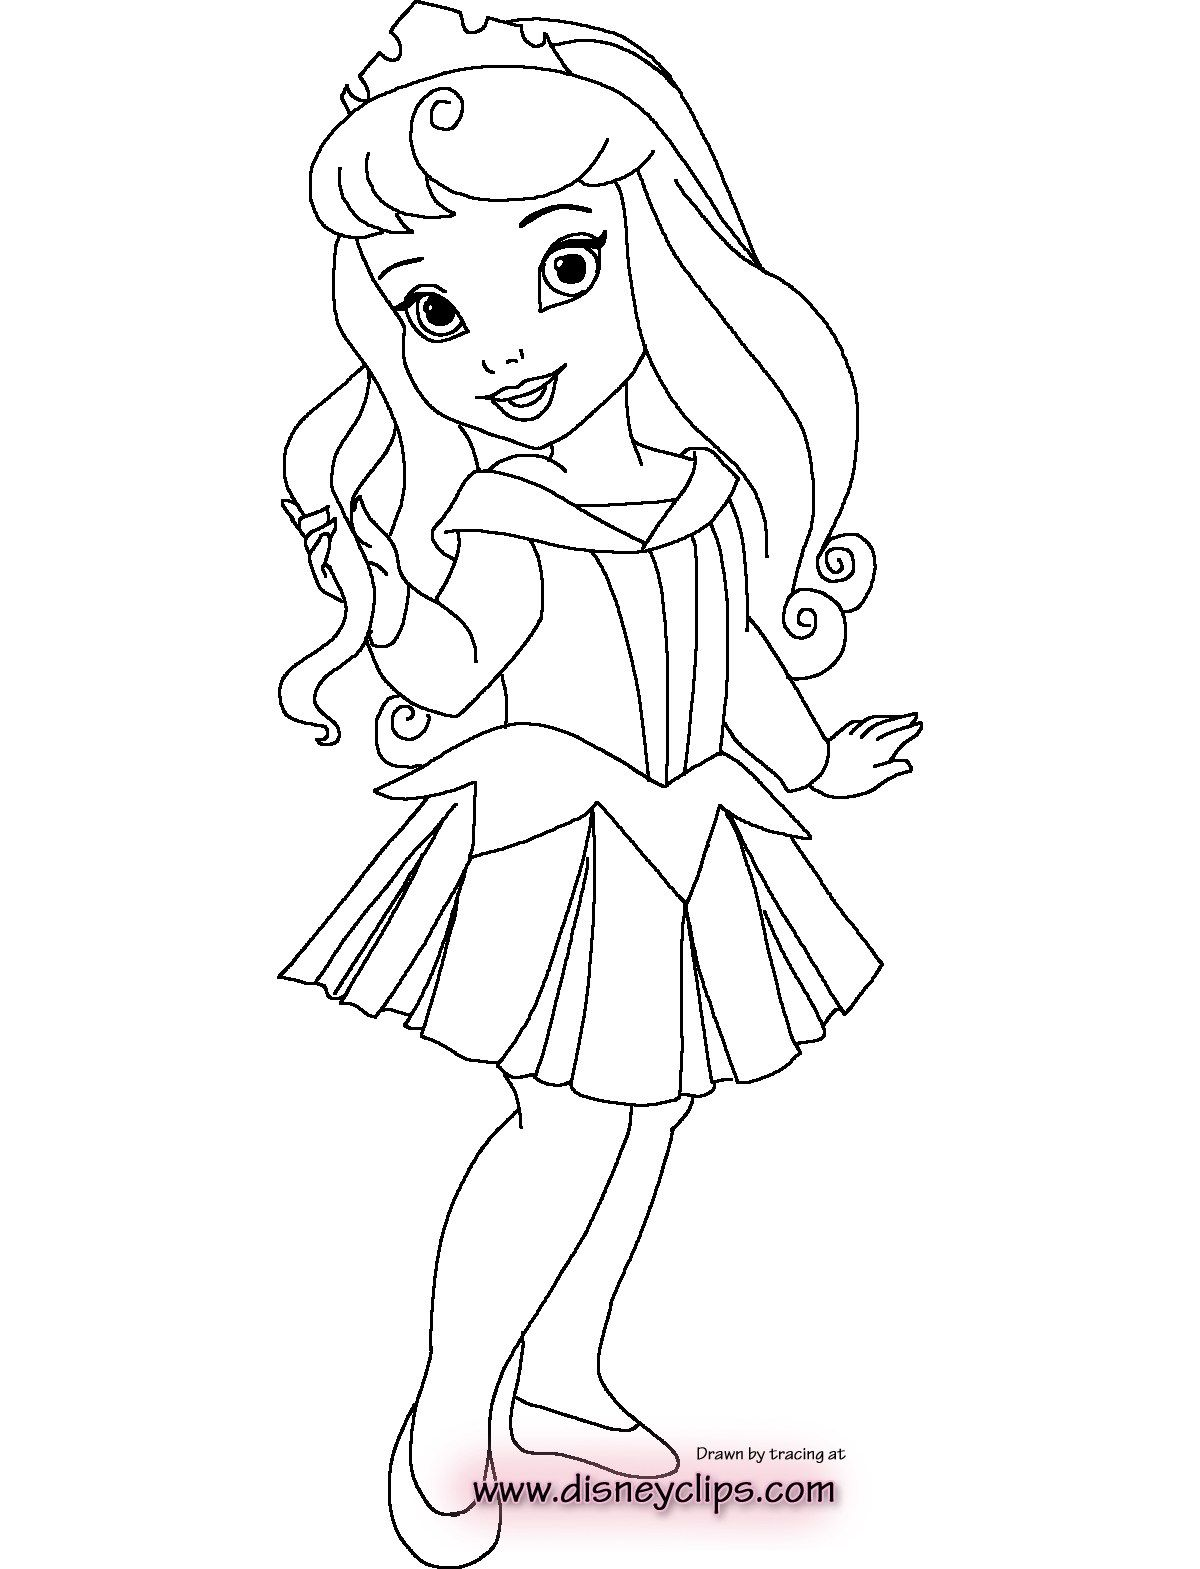 22 Great Photo Of Belle Coloring Pages Davemelillo Com Disney Princess Coloring Pages Mermaid Coloring Pages Disney Princess Colors